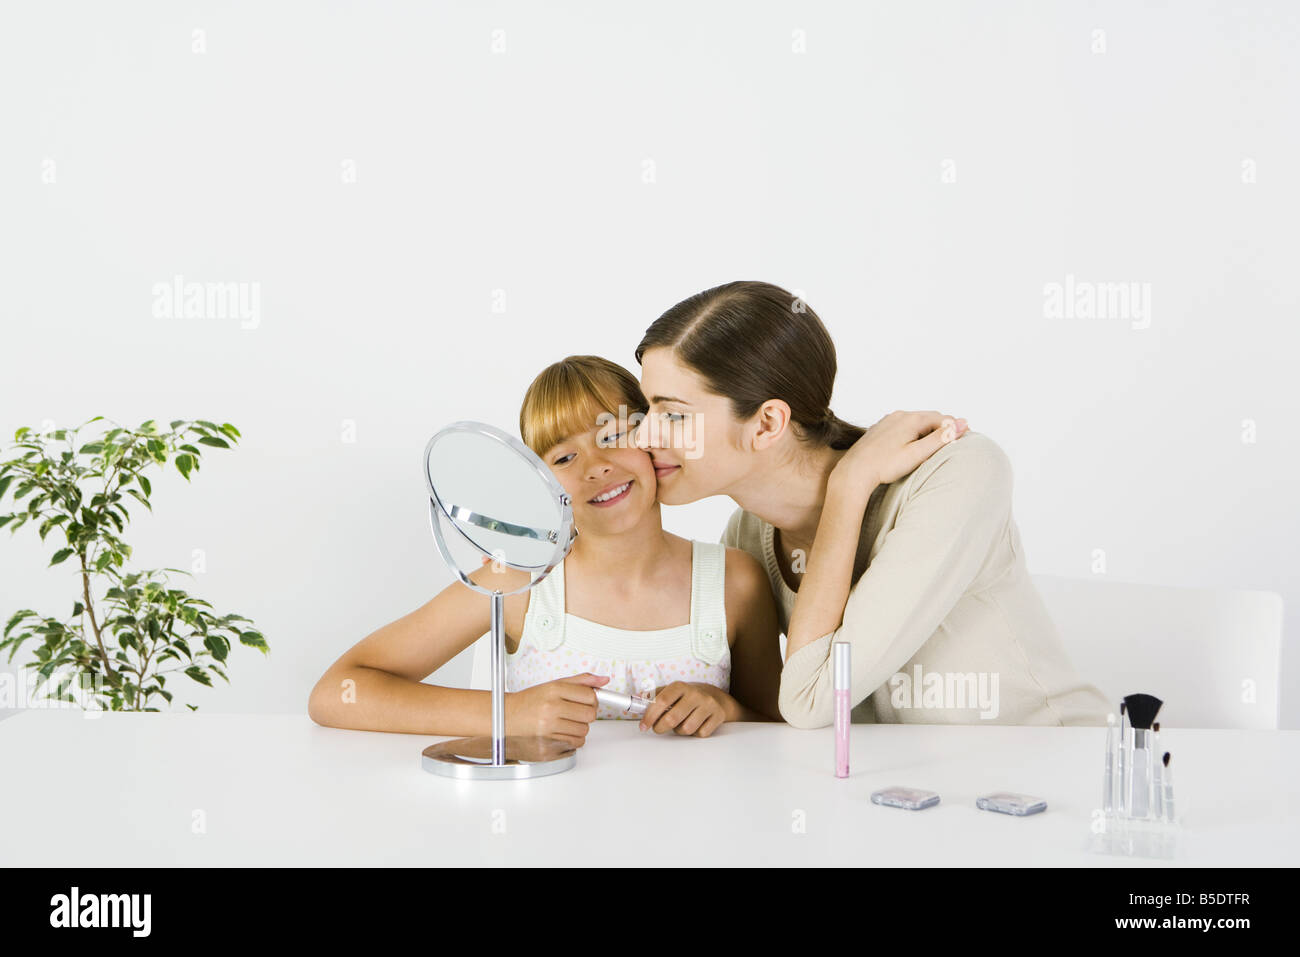 Young woman and preteen sister sitting in front of mirror, older sister kissing younger sister's cheek Stock Photo